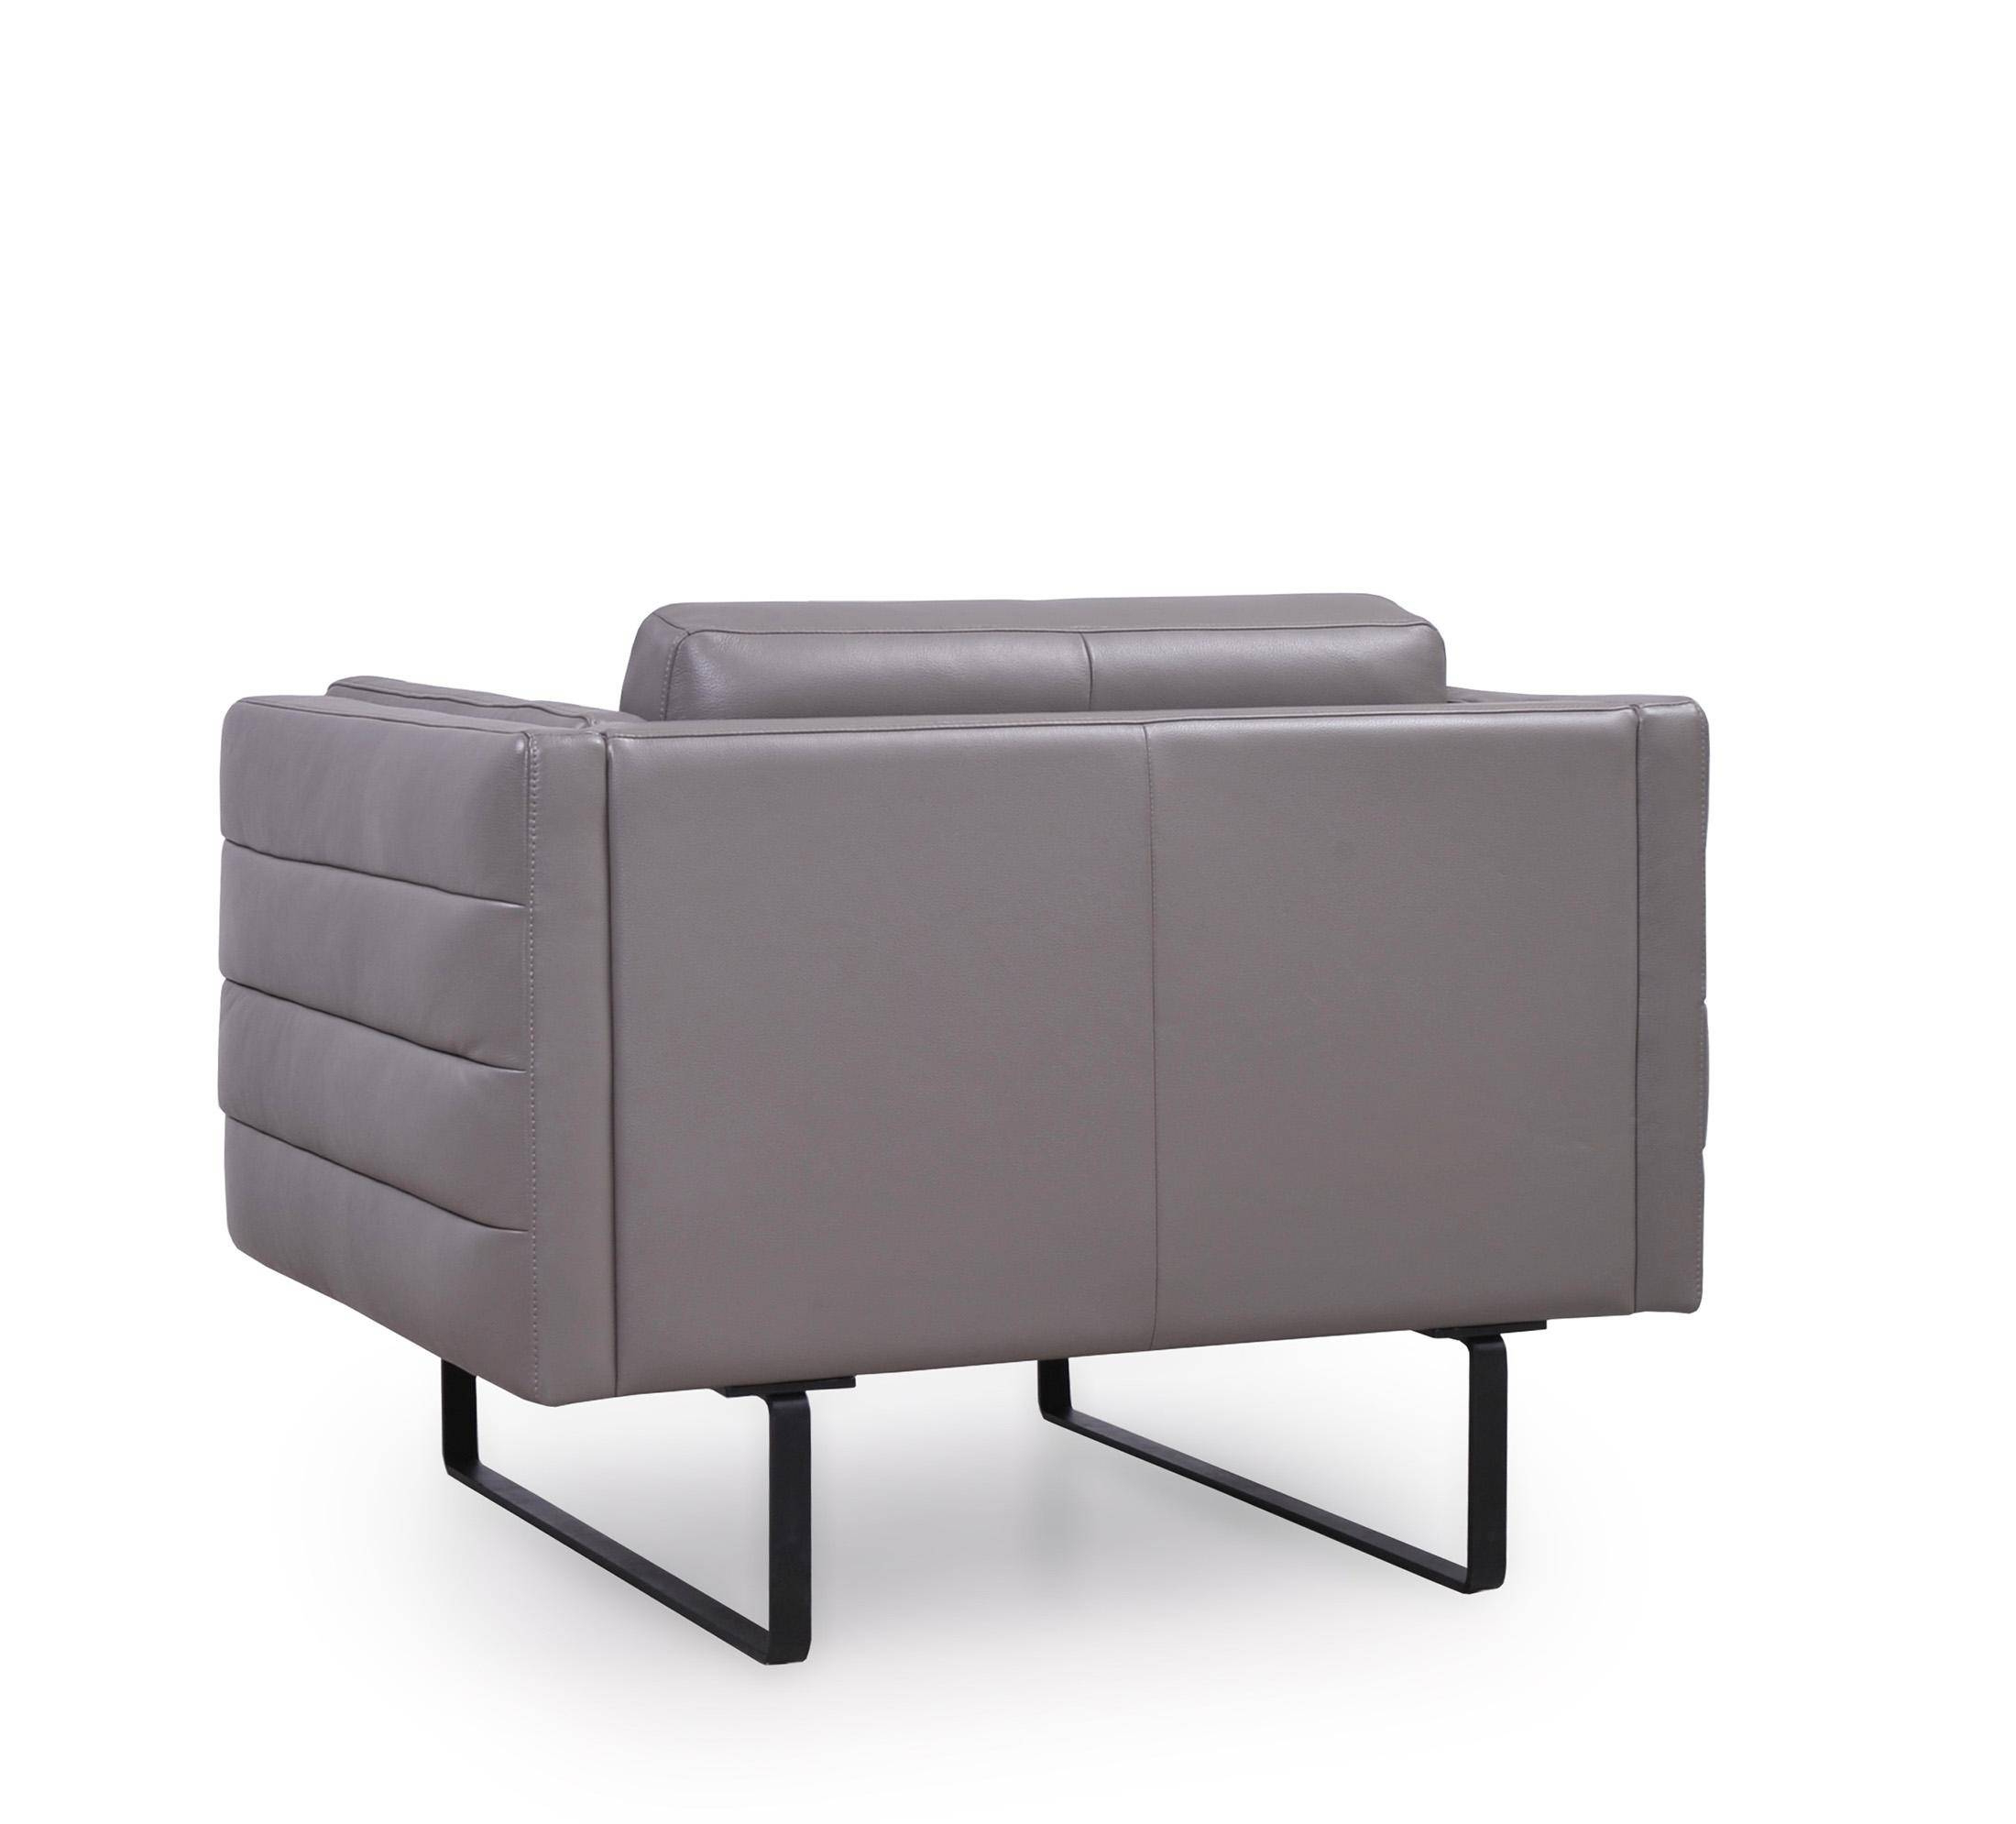 Buy Moroni Orson 582 Sofa Armchair Set 2 Pcs In Gray, Top Intended For Orsen Tv Stands (View 1 of 20)